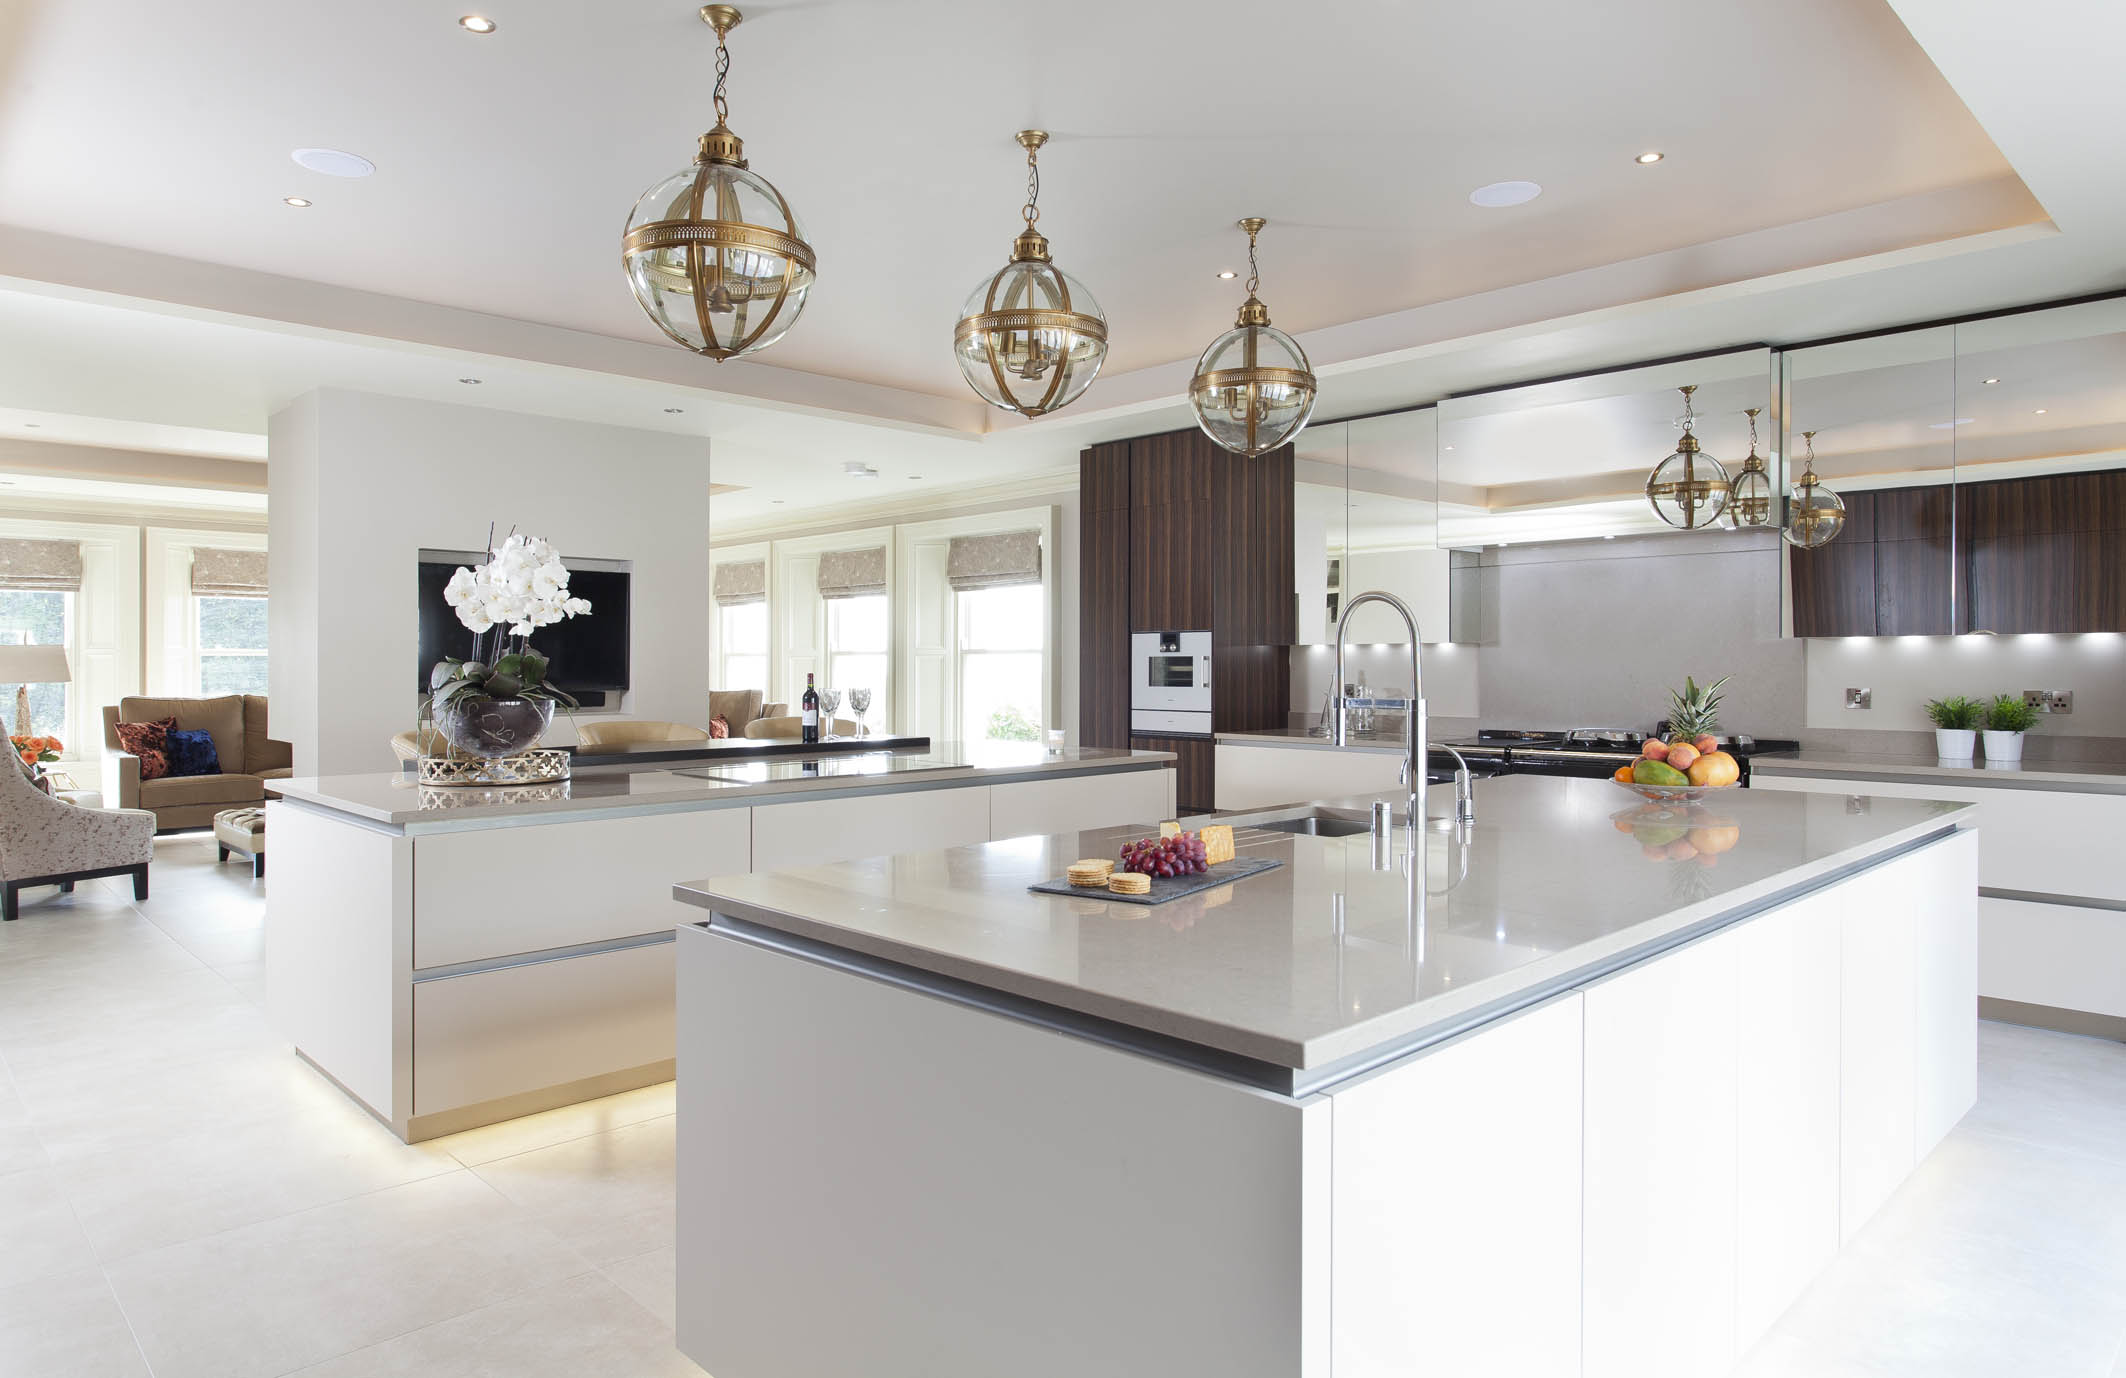 Handmade kitchens ireland luxury handpainted kitchens in for Kitchen designs ireland